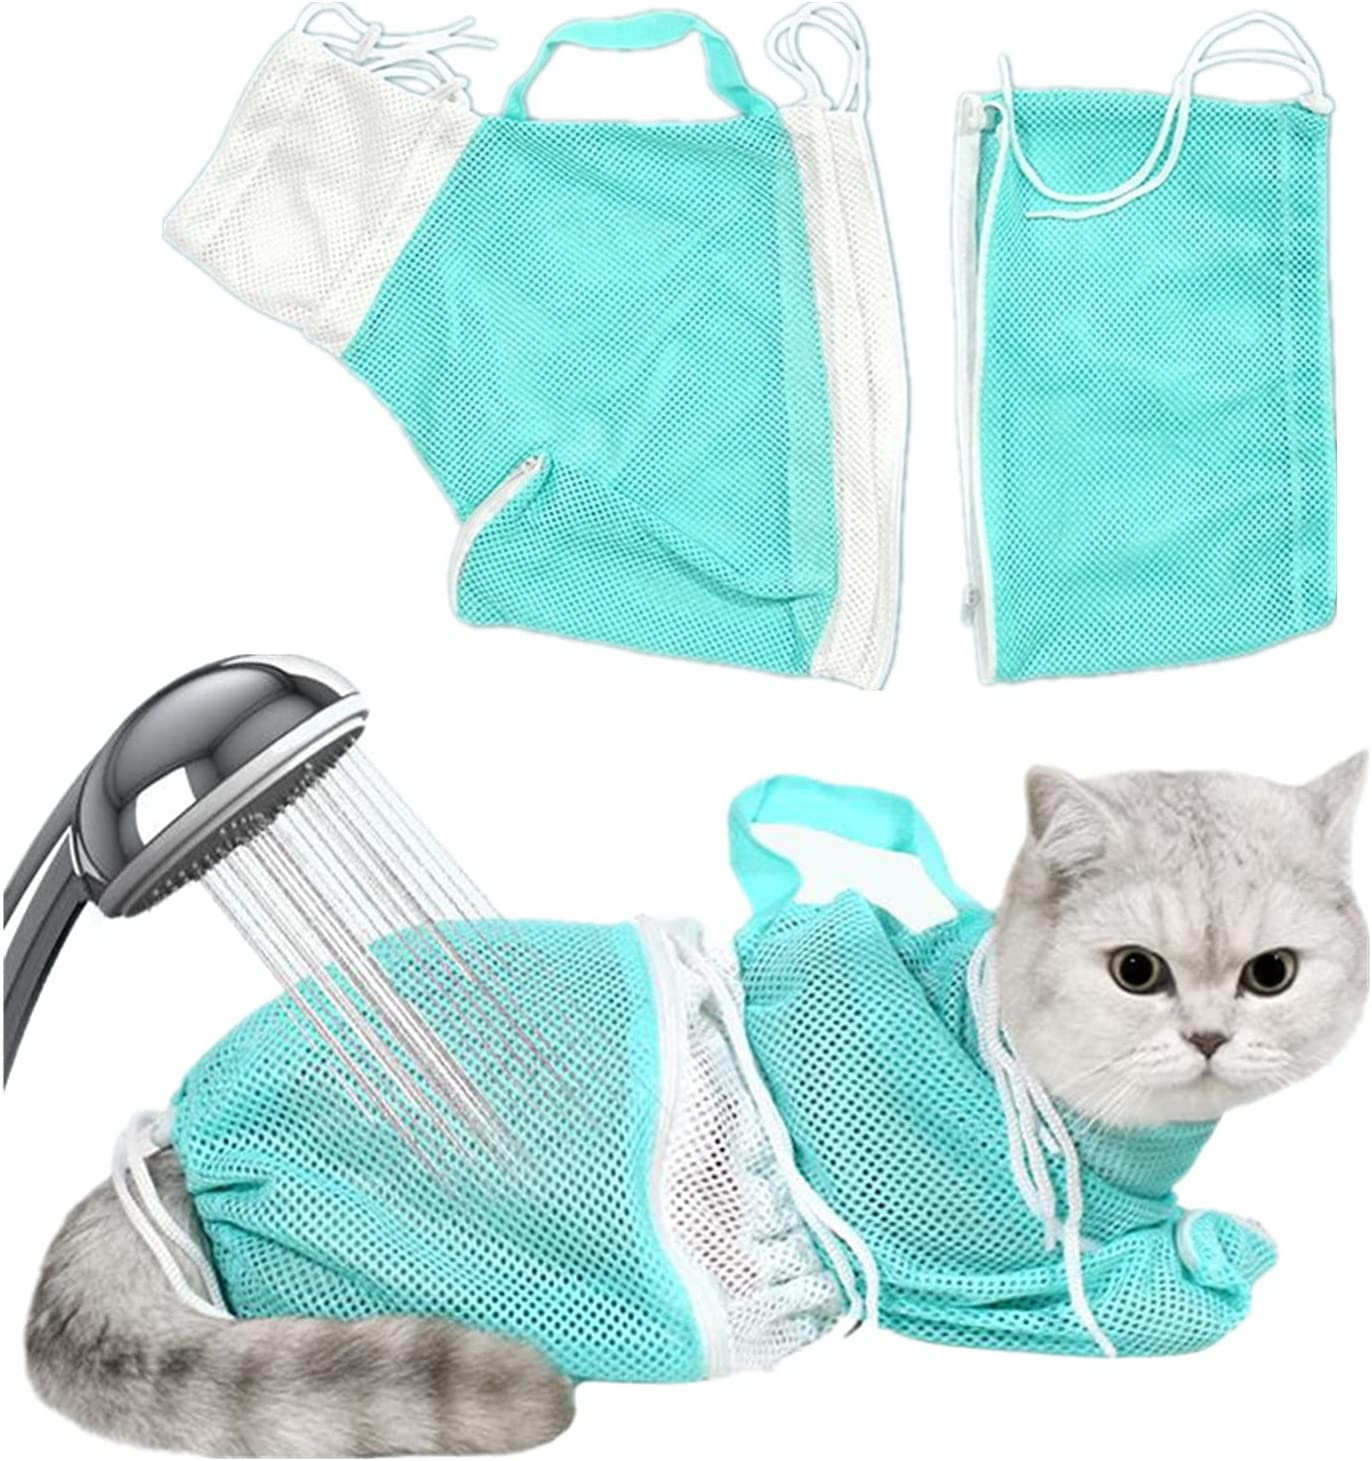 Cat Bathing Bag Free Shipping New Carrier Detachable Max 79% OFF and to Adjustable Size in